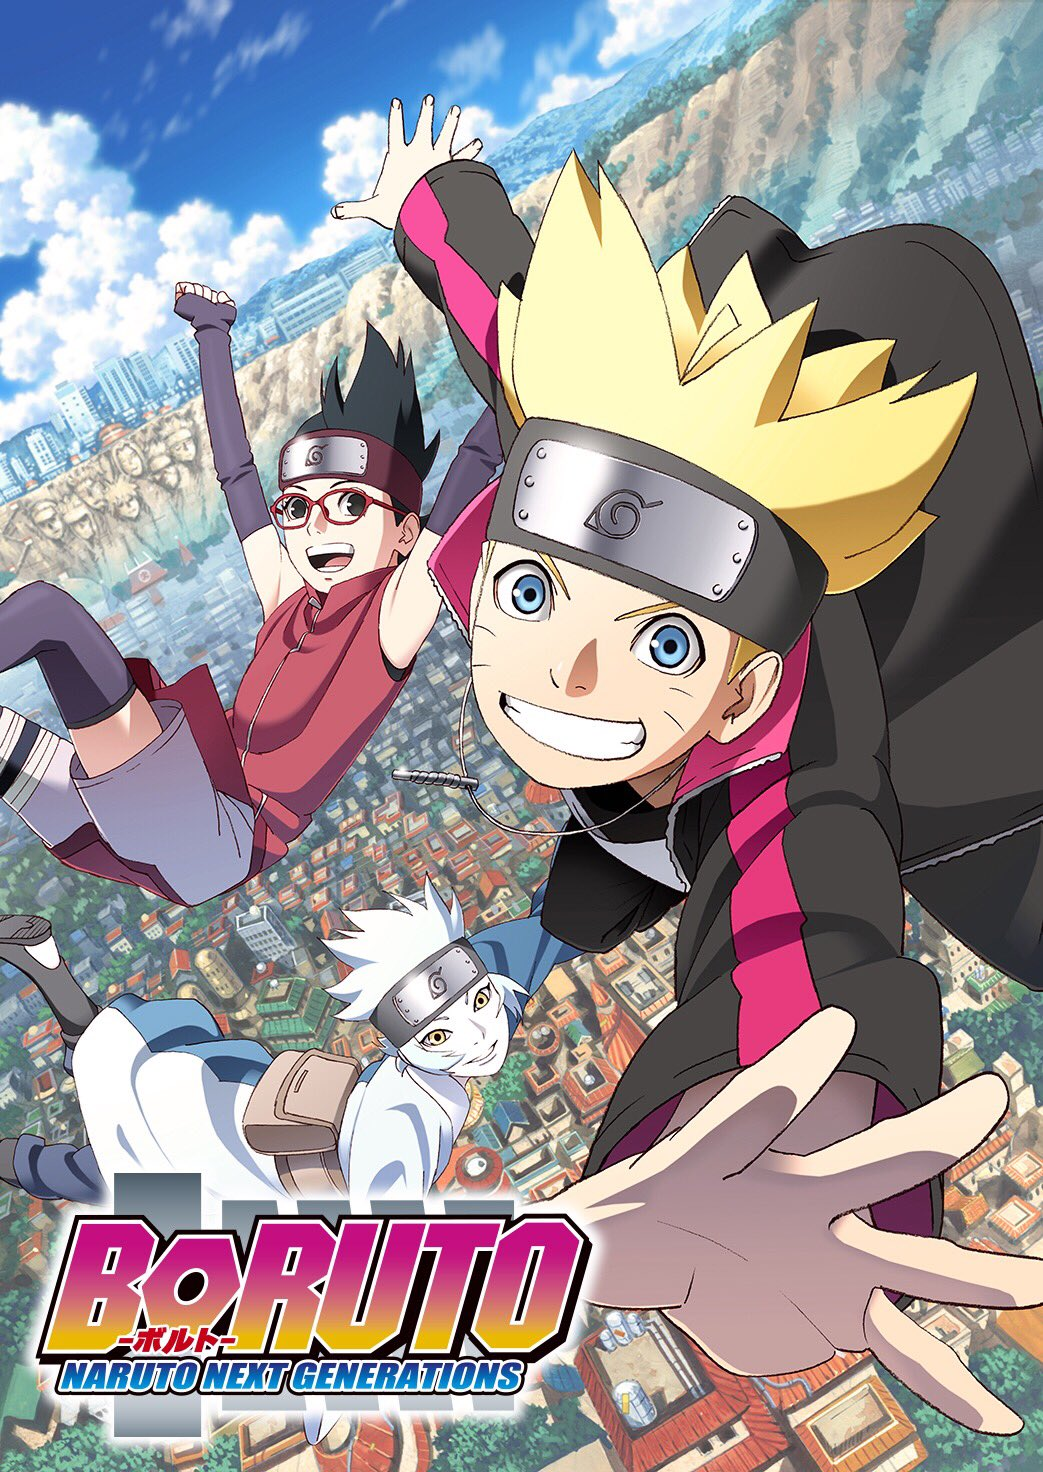 boruto_anime_visual_art